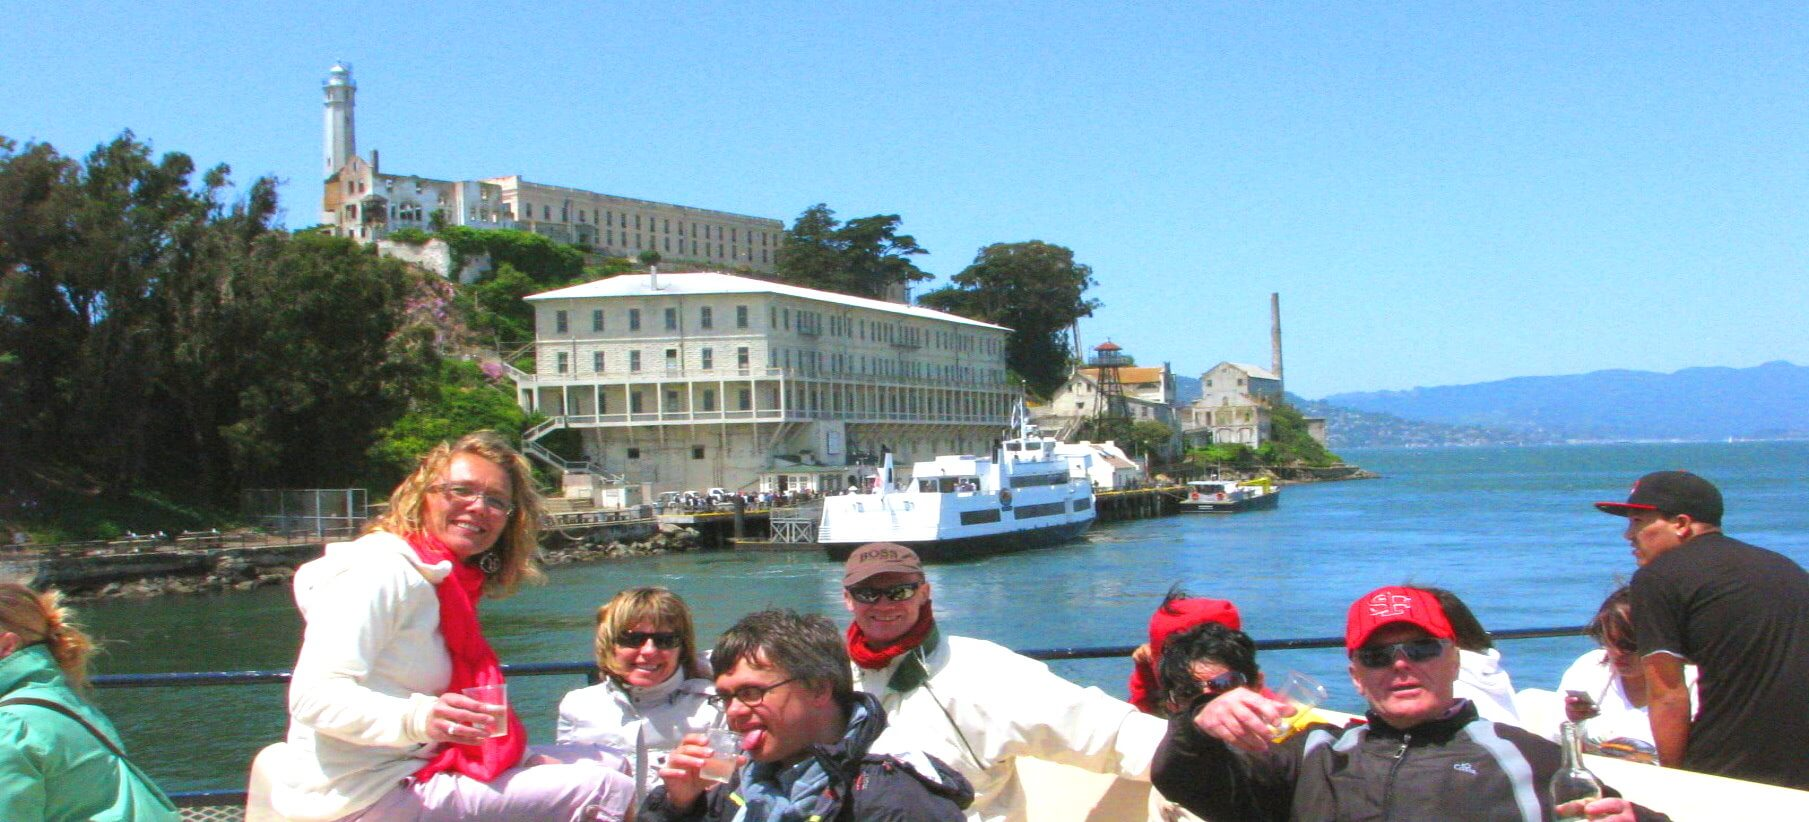 alcatraz-ferry-ride-tour-around-alcatraz-island-prison